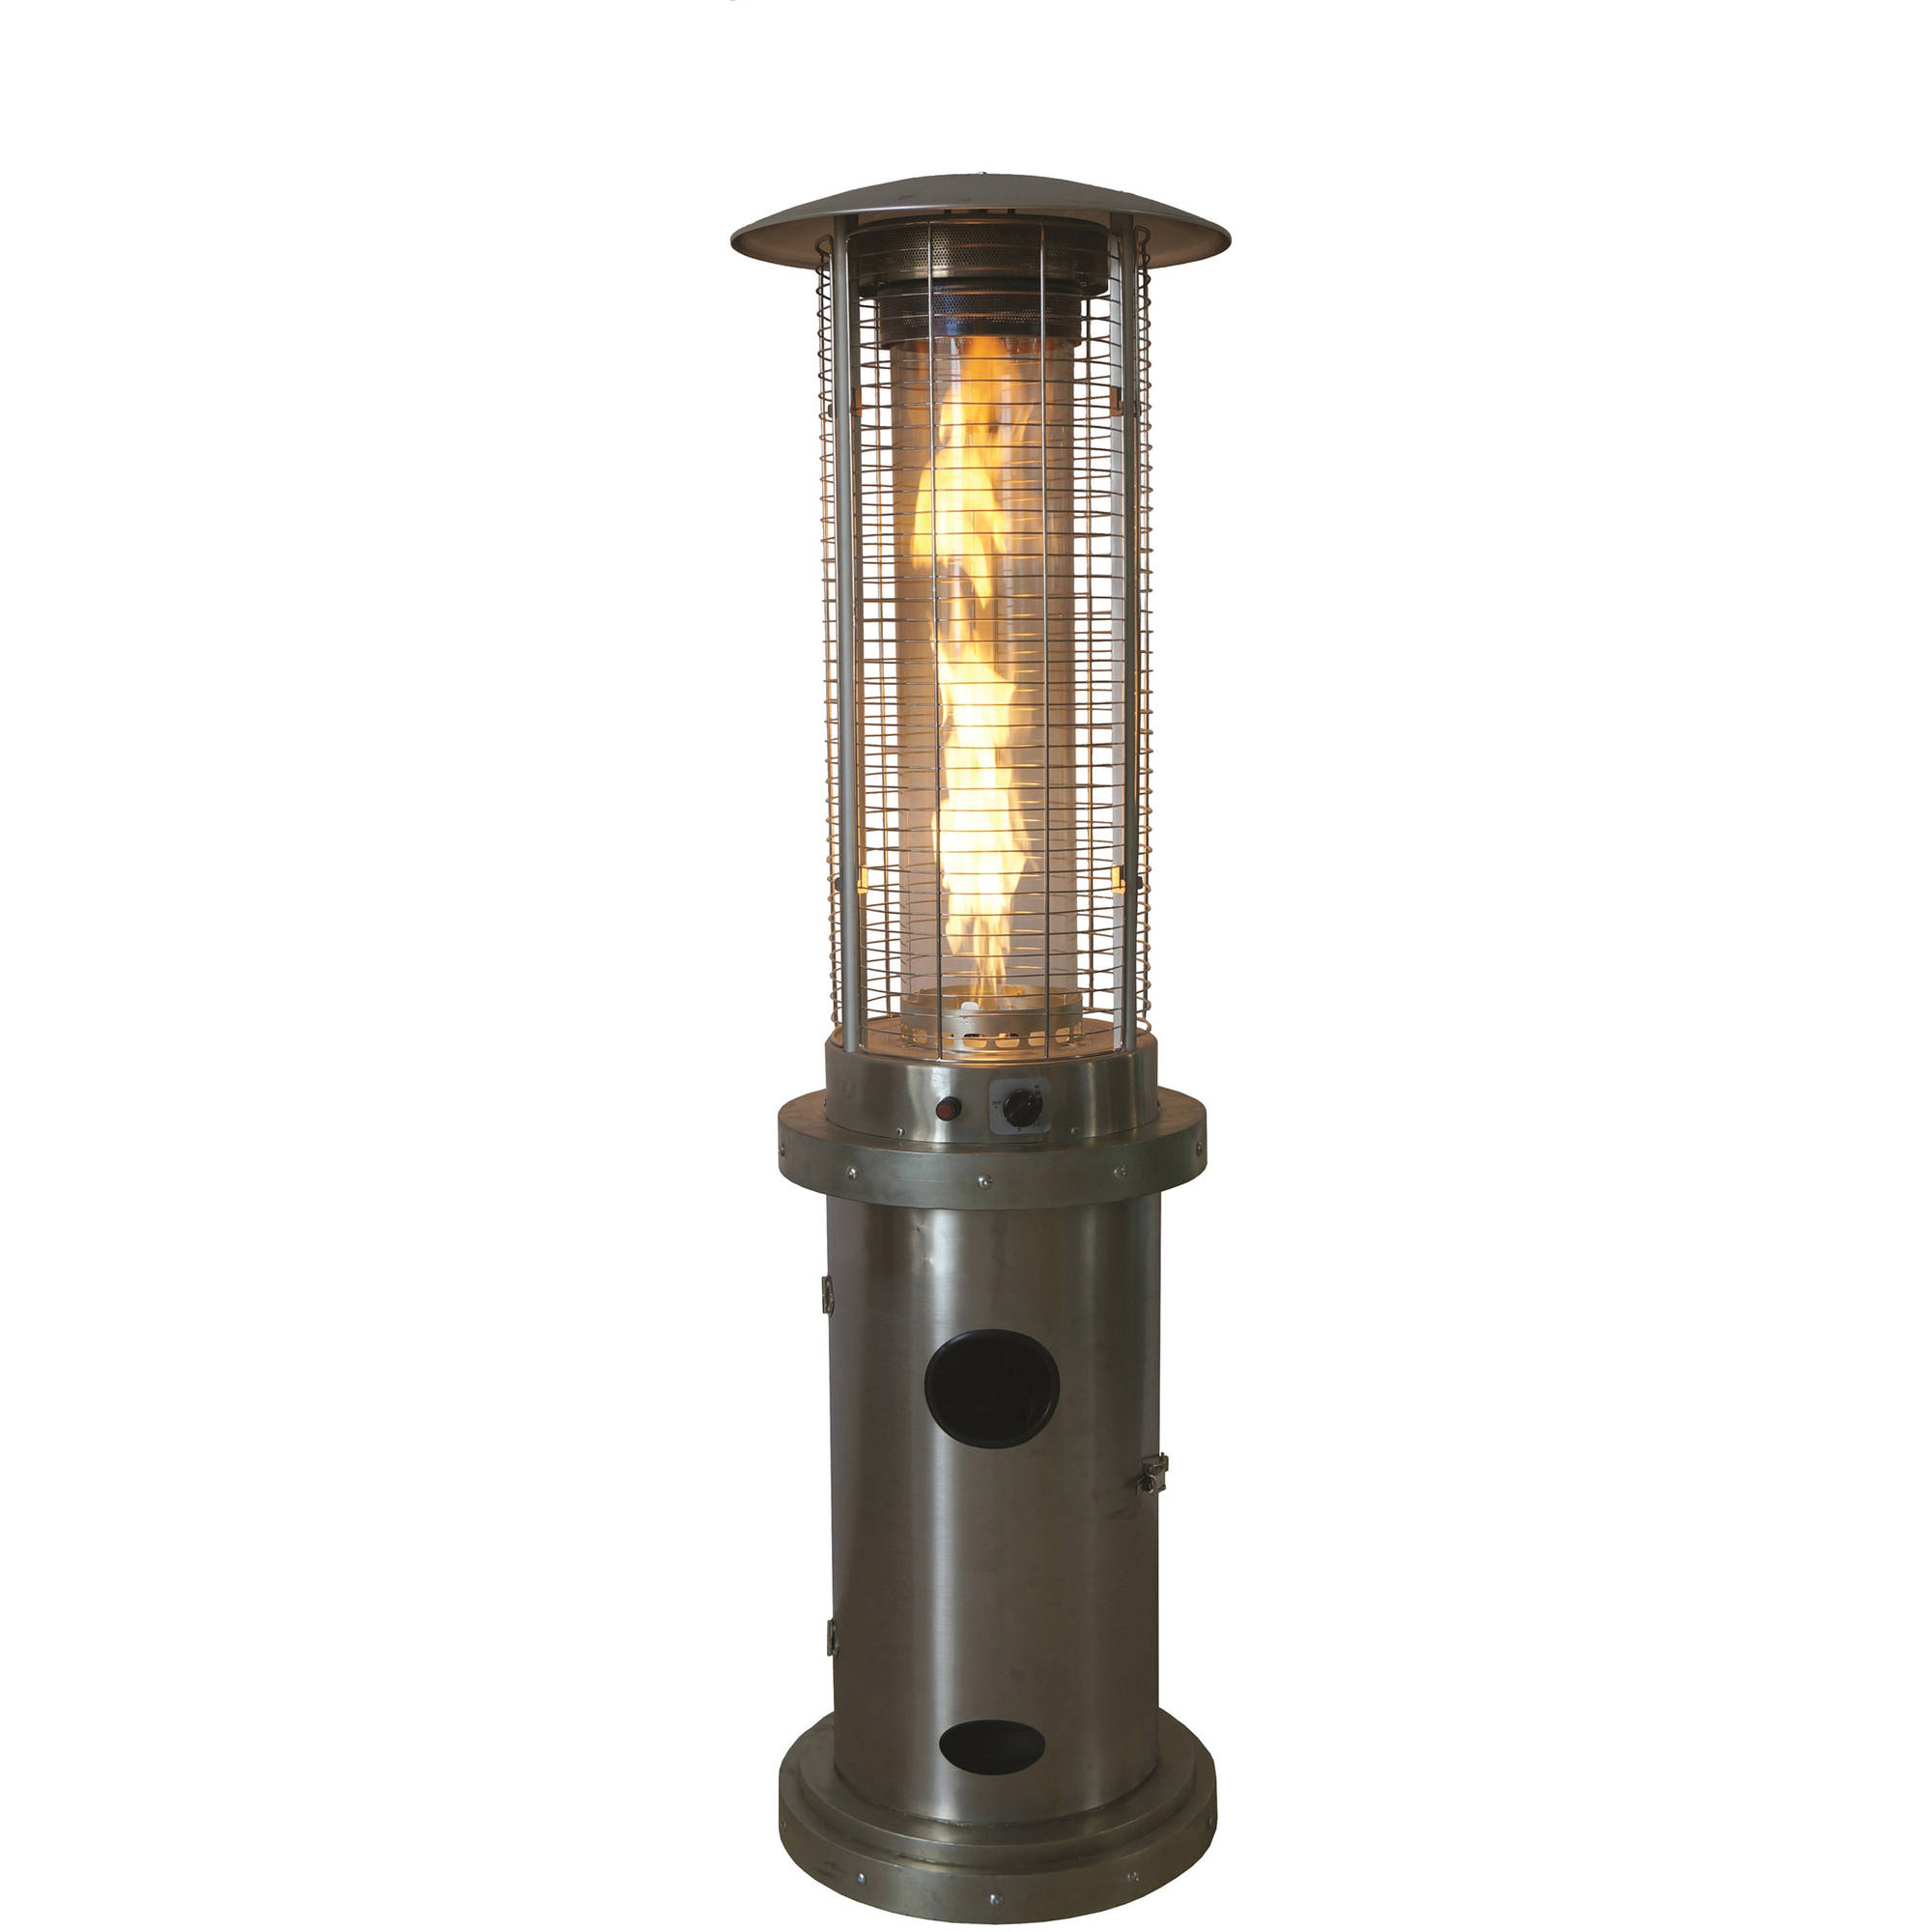 Stainless Steel Outdoor Patio Heater Propane LP Gas